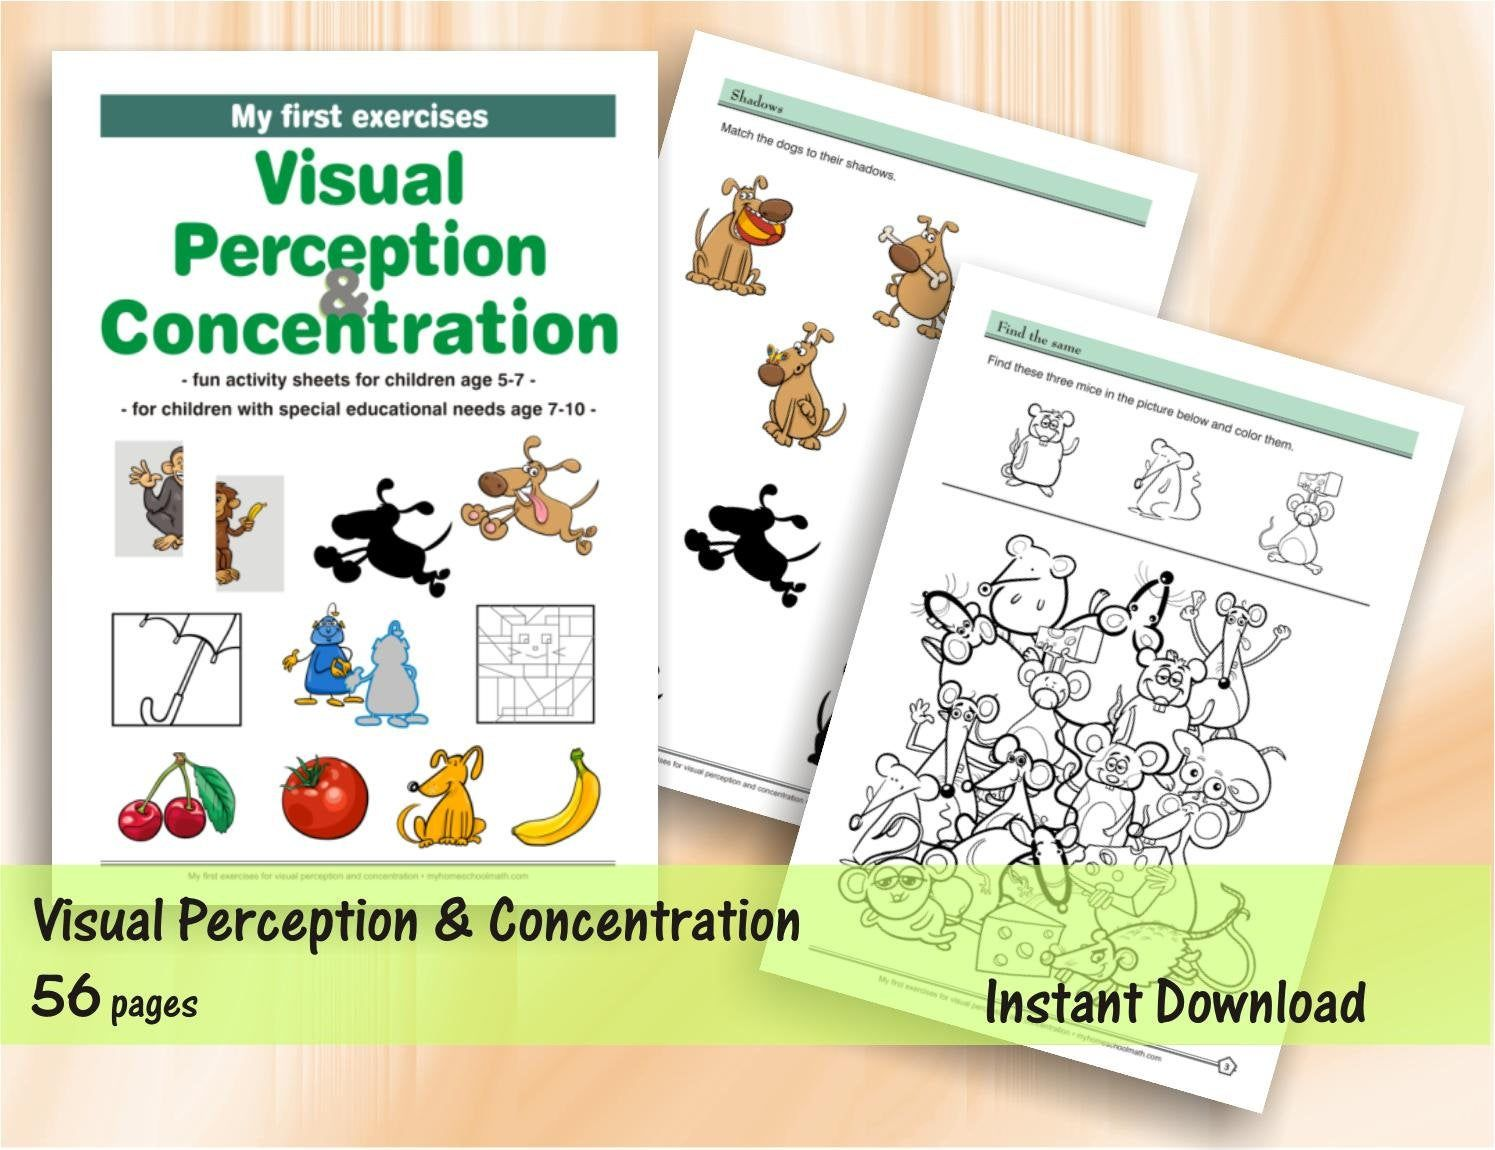 My First Exercises For Visual Perception And Concentration 56 Printable Worksheets Download Digital Printable Workbook Printable Worksheets Special Educational Needs Free Printable Activities [ 1150 x 1495 Pixel ]